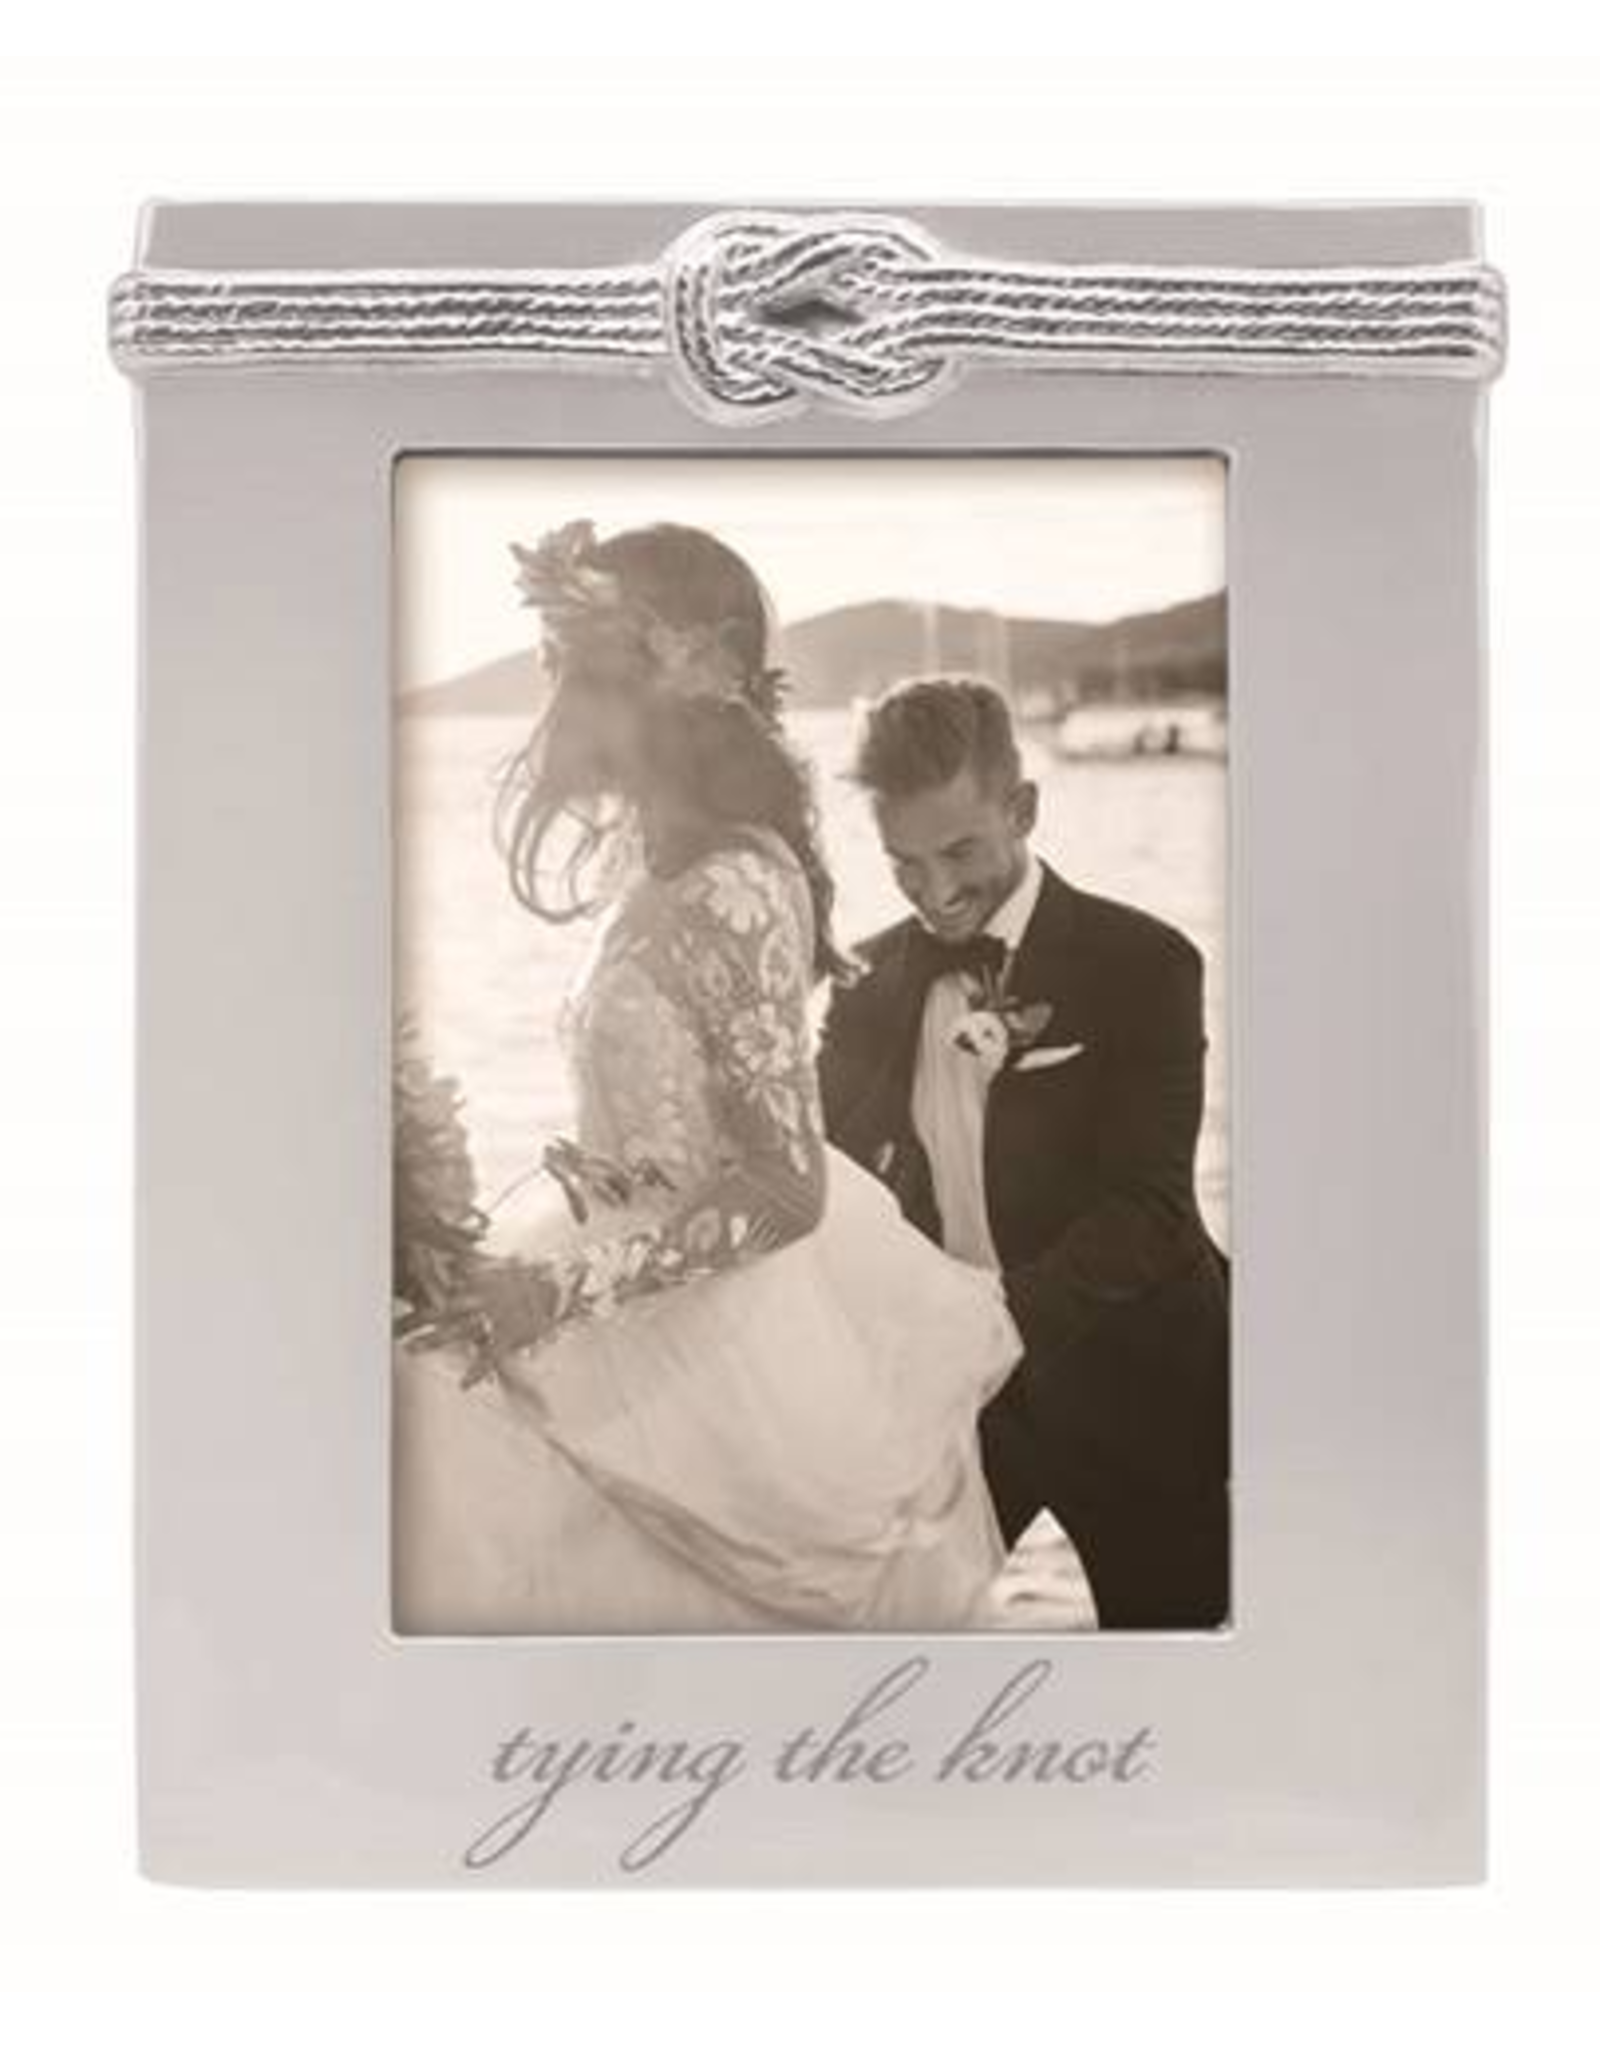 Mariposa Tying the Knot Frame 5x7